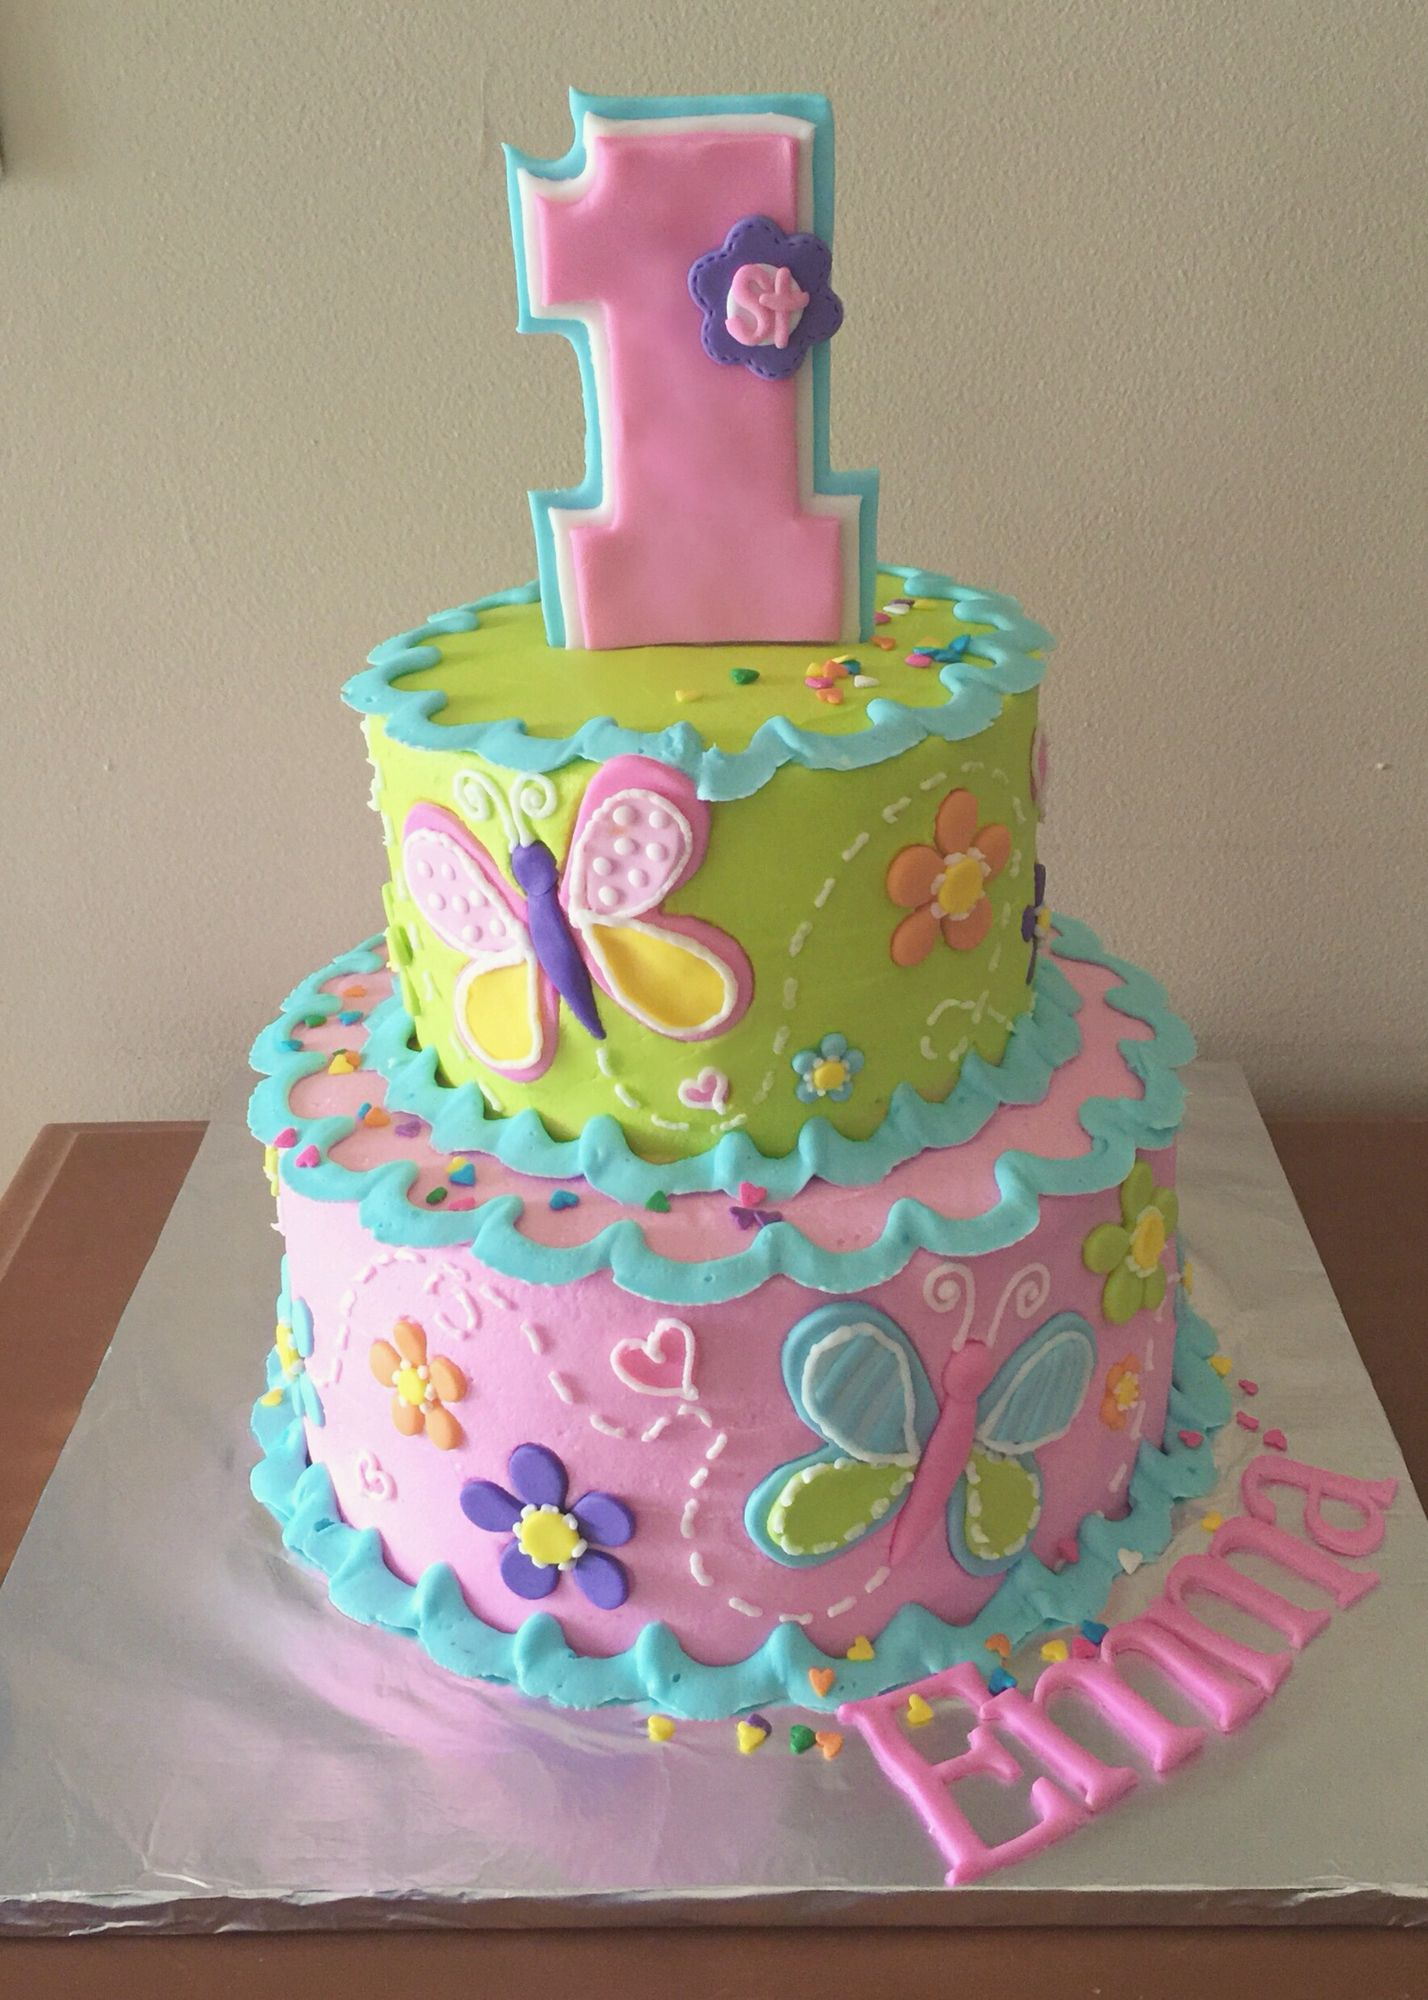 32+ Brilliant Image of Birthday Cakes For Girls